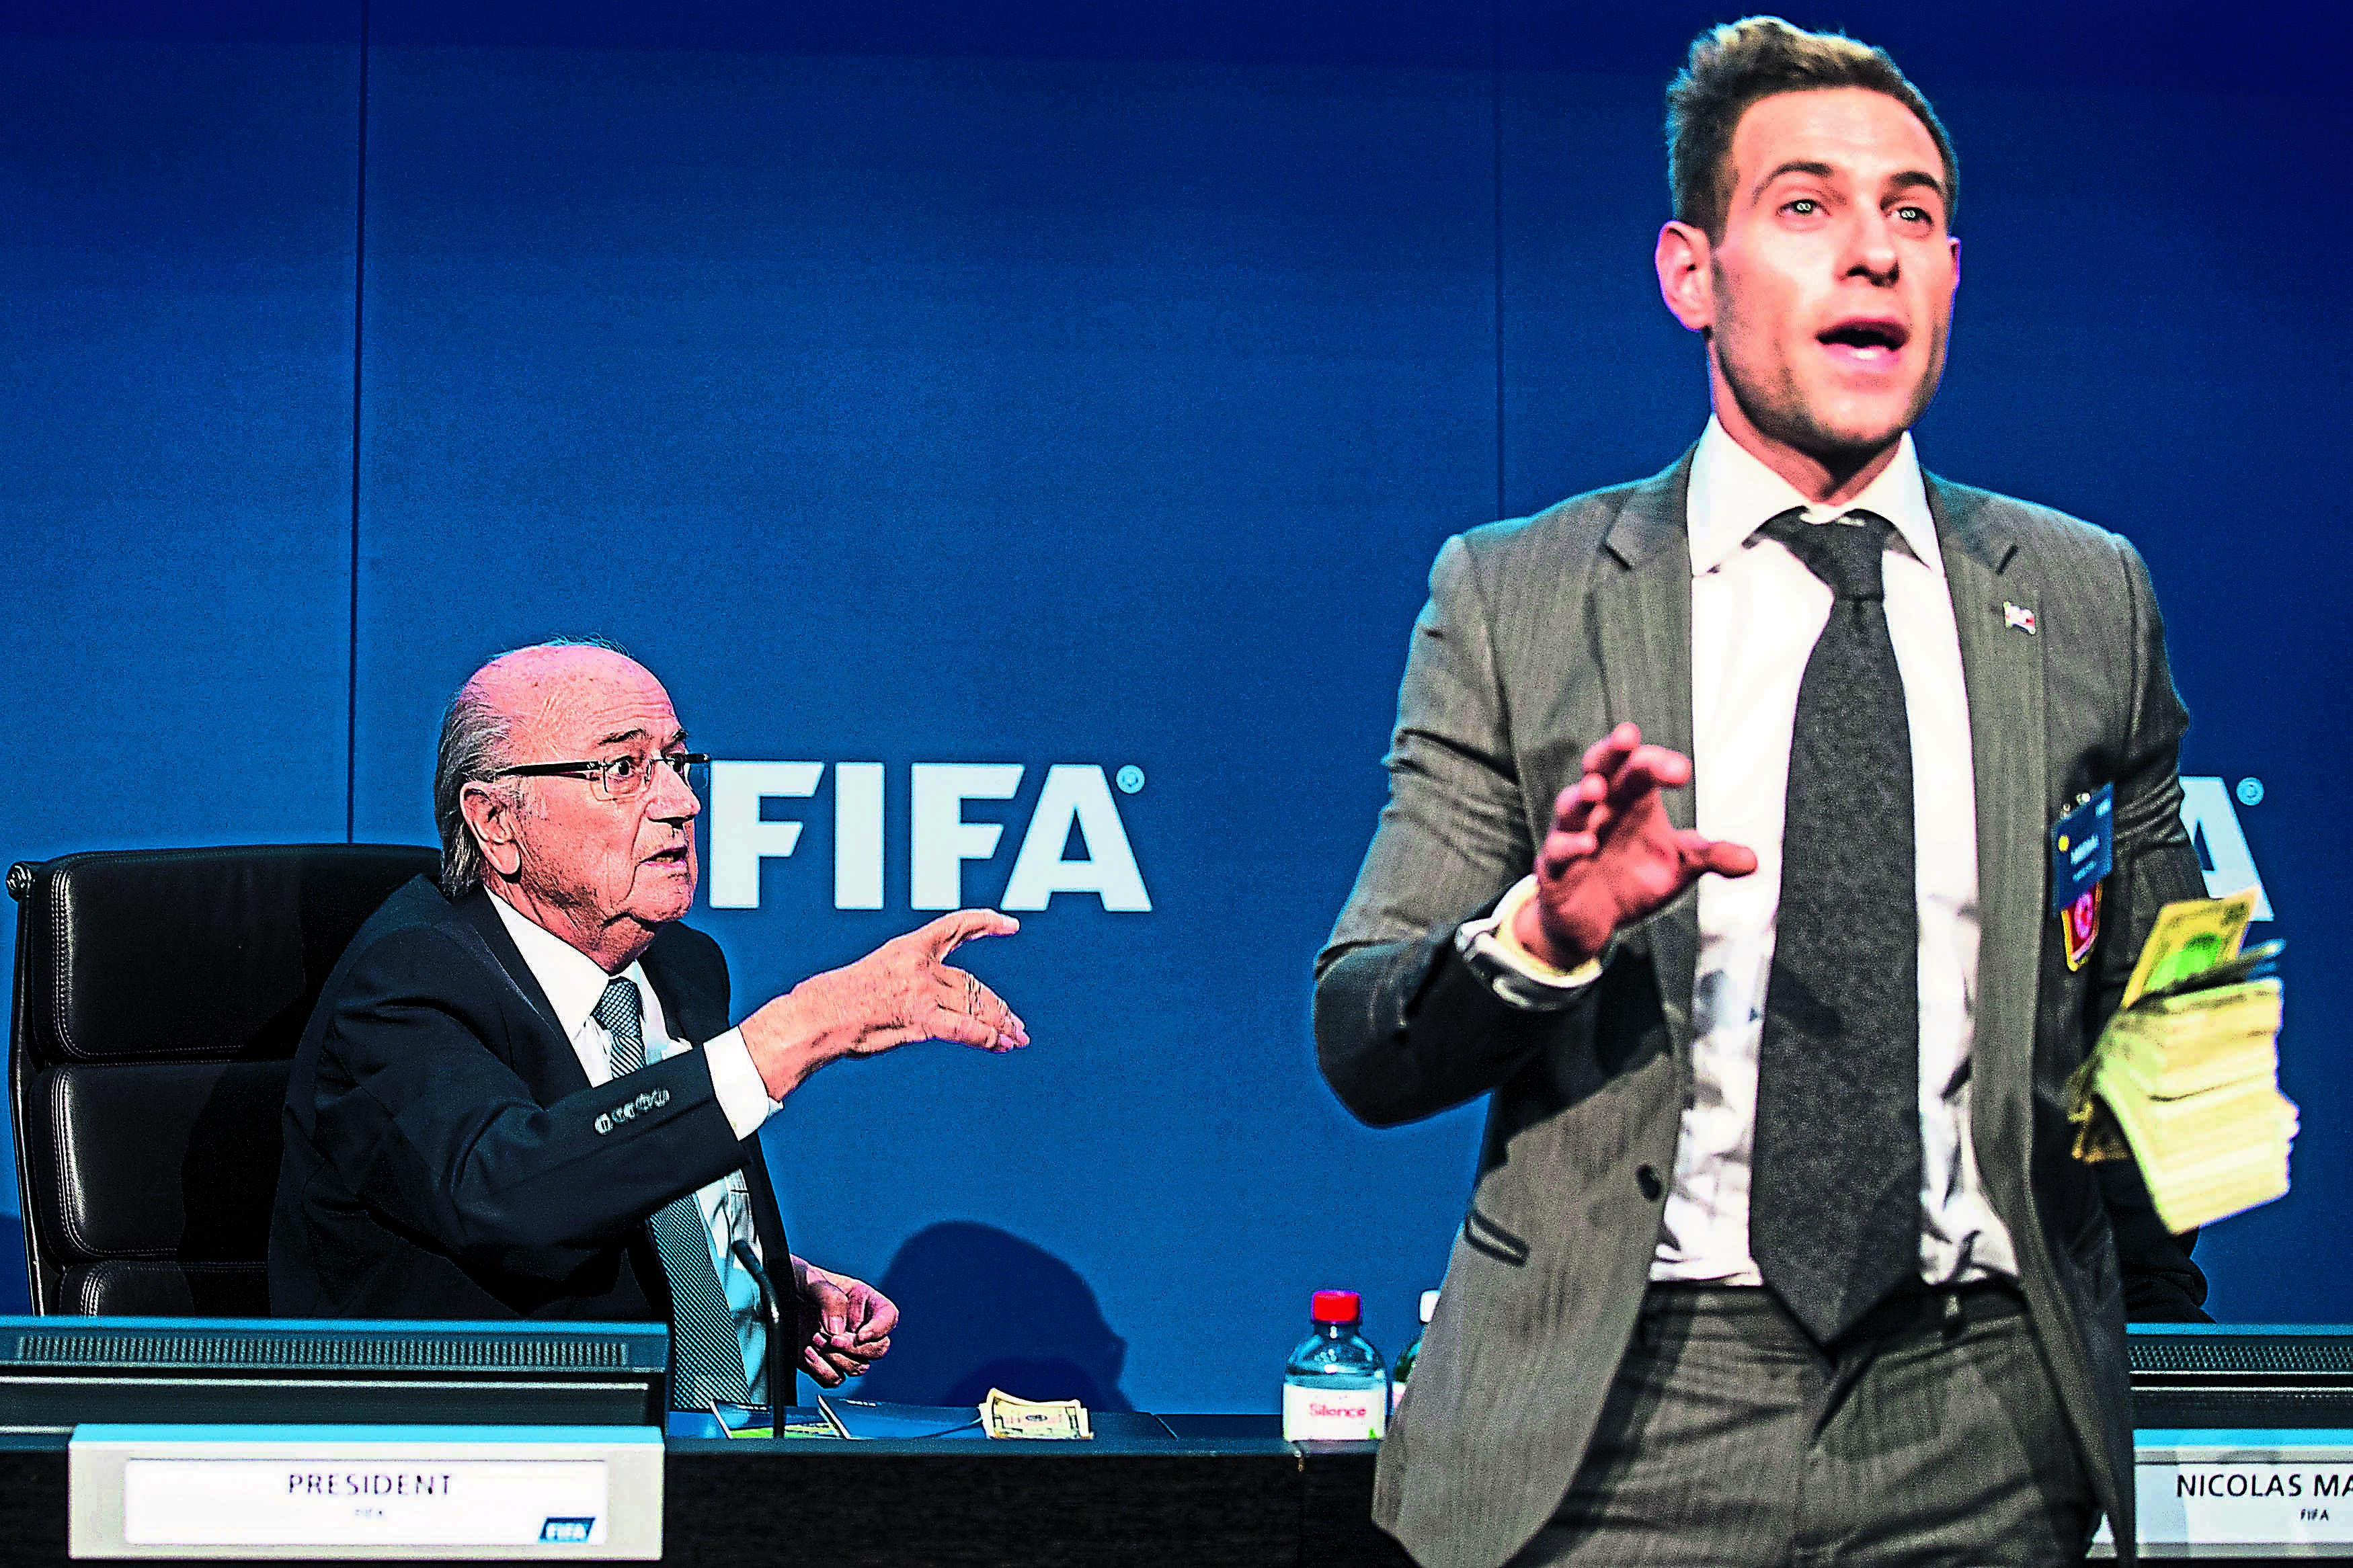 Prankster showers Fifa chief Blatter with cash